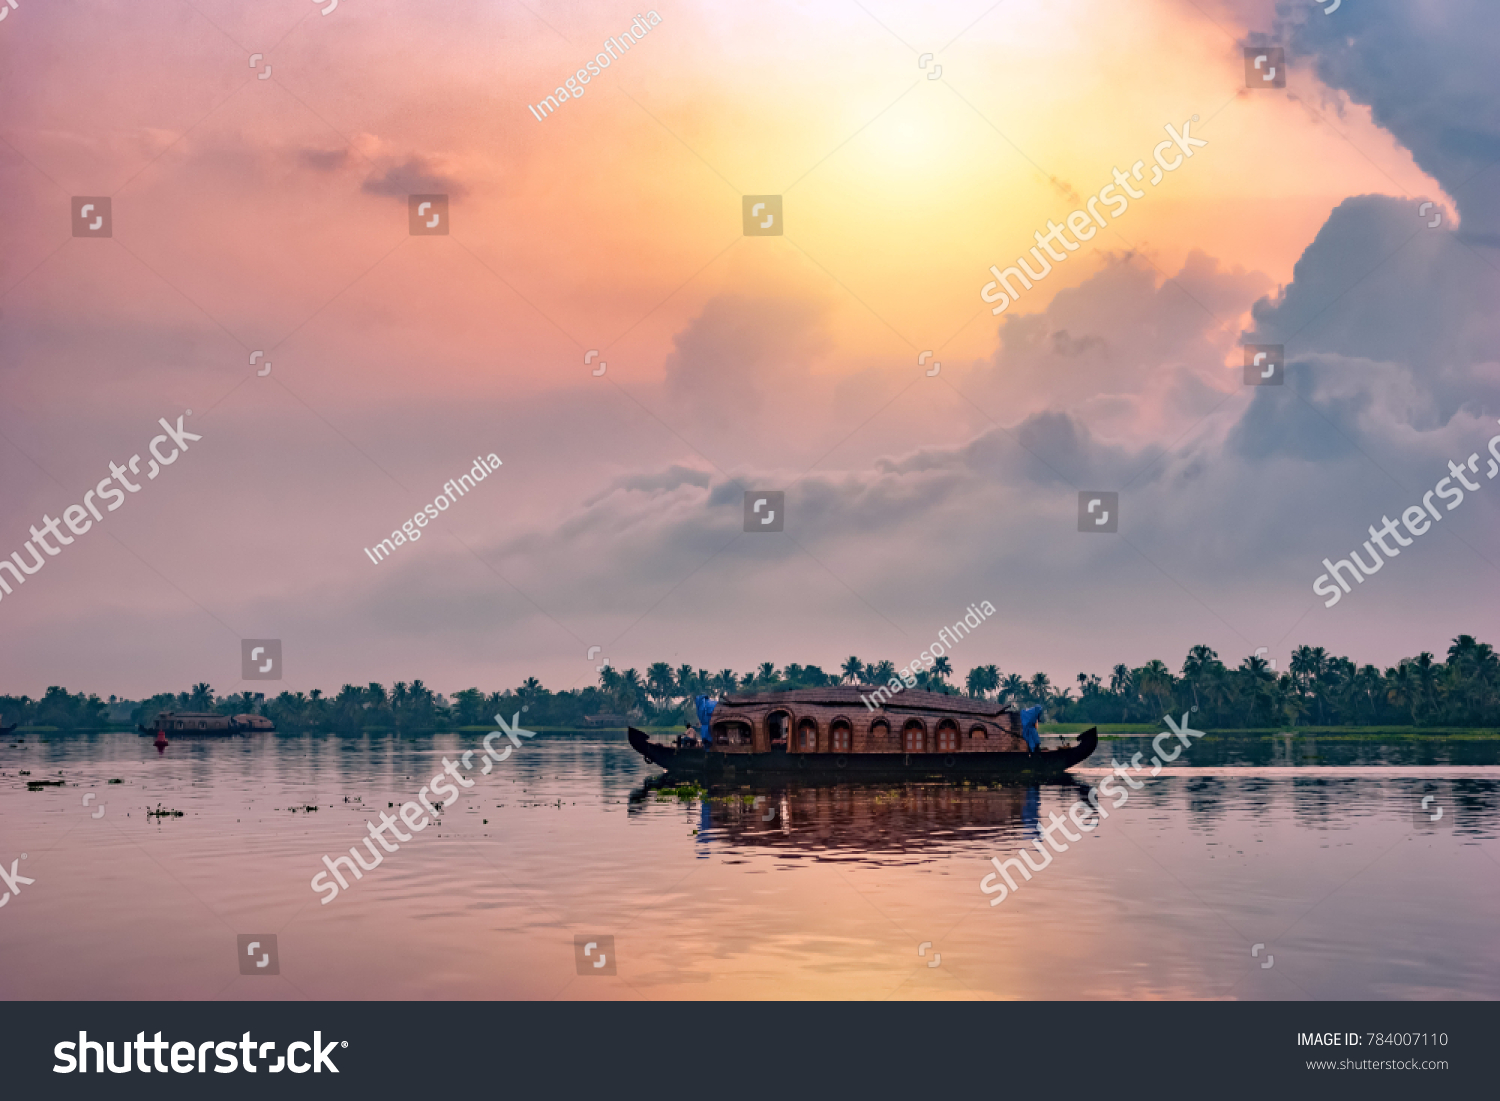 Alleppey, Kerala, India - October 15, 2007 : Backwater tourism is an important tourism attraction in this city of Kerala; Houseboats are seen all over the backwater streams carrying tourists  #784007110